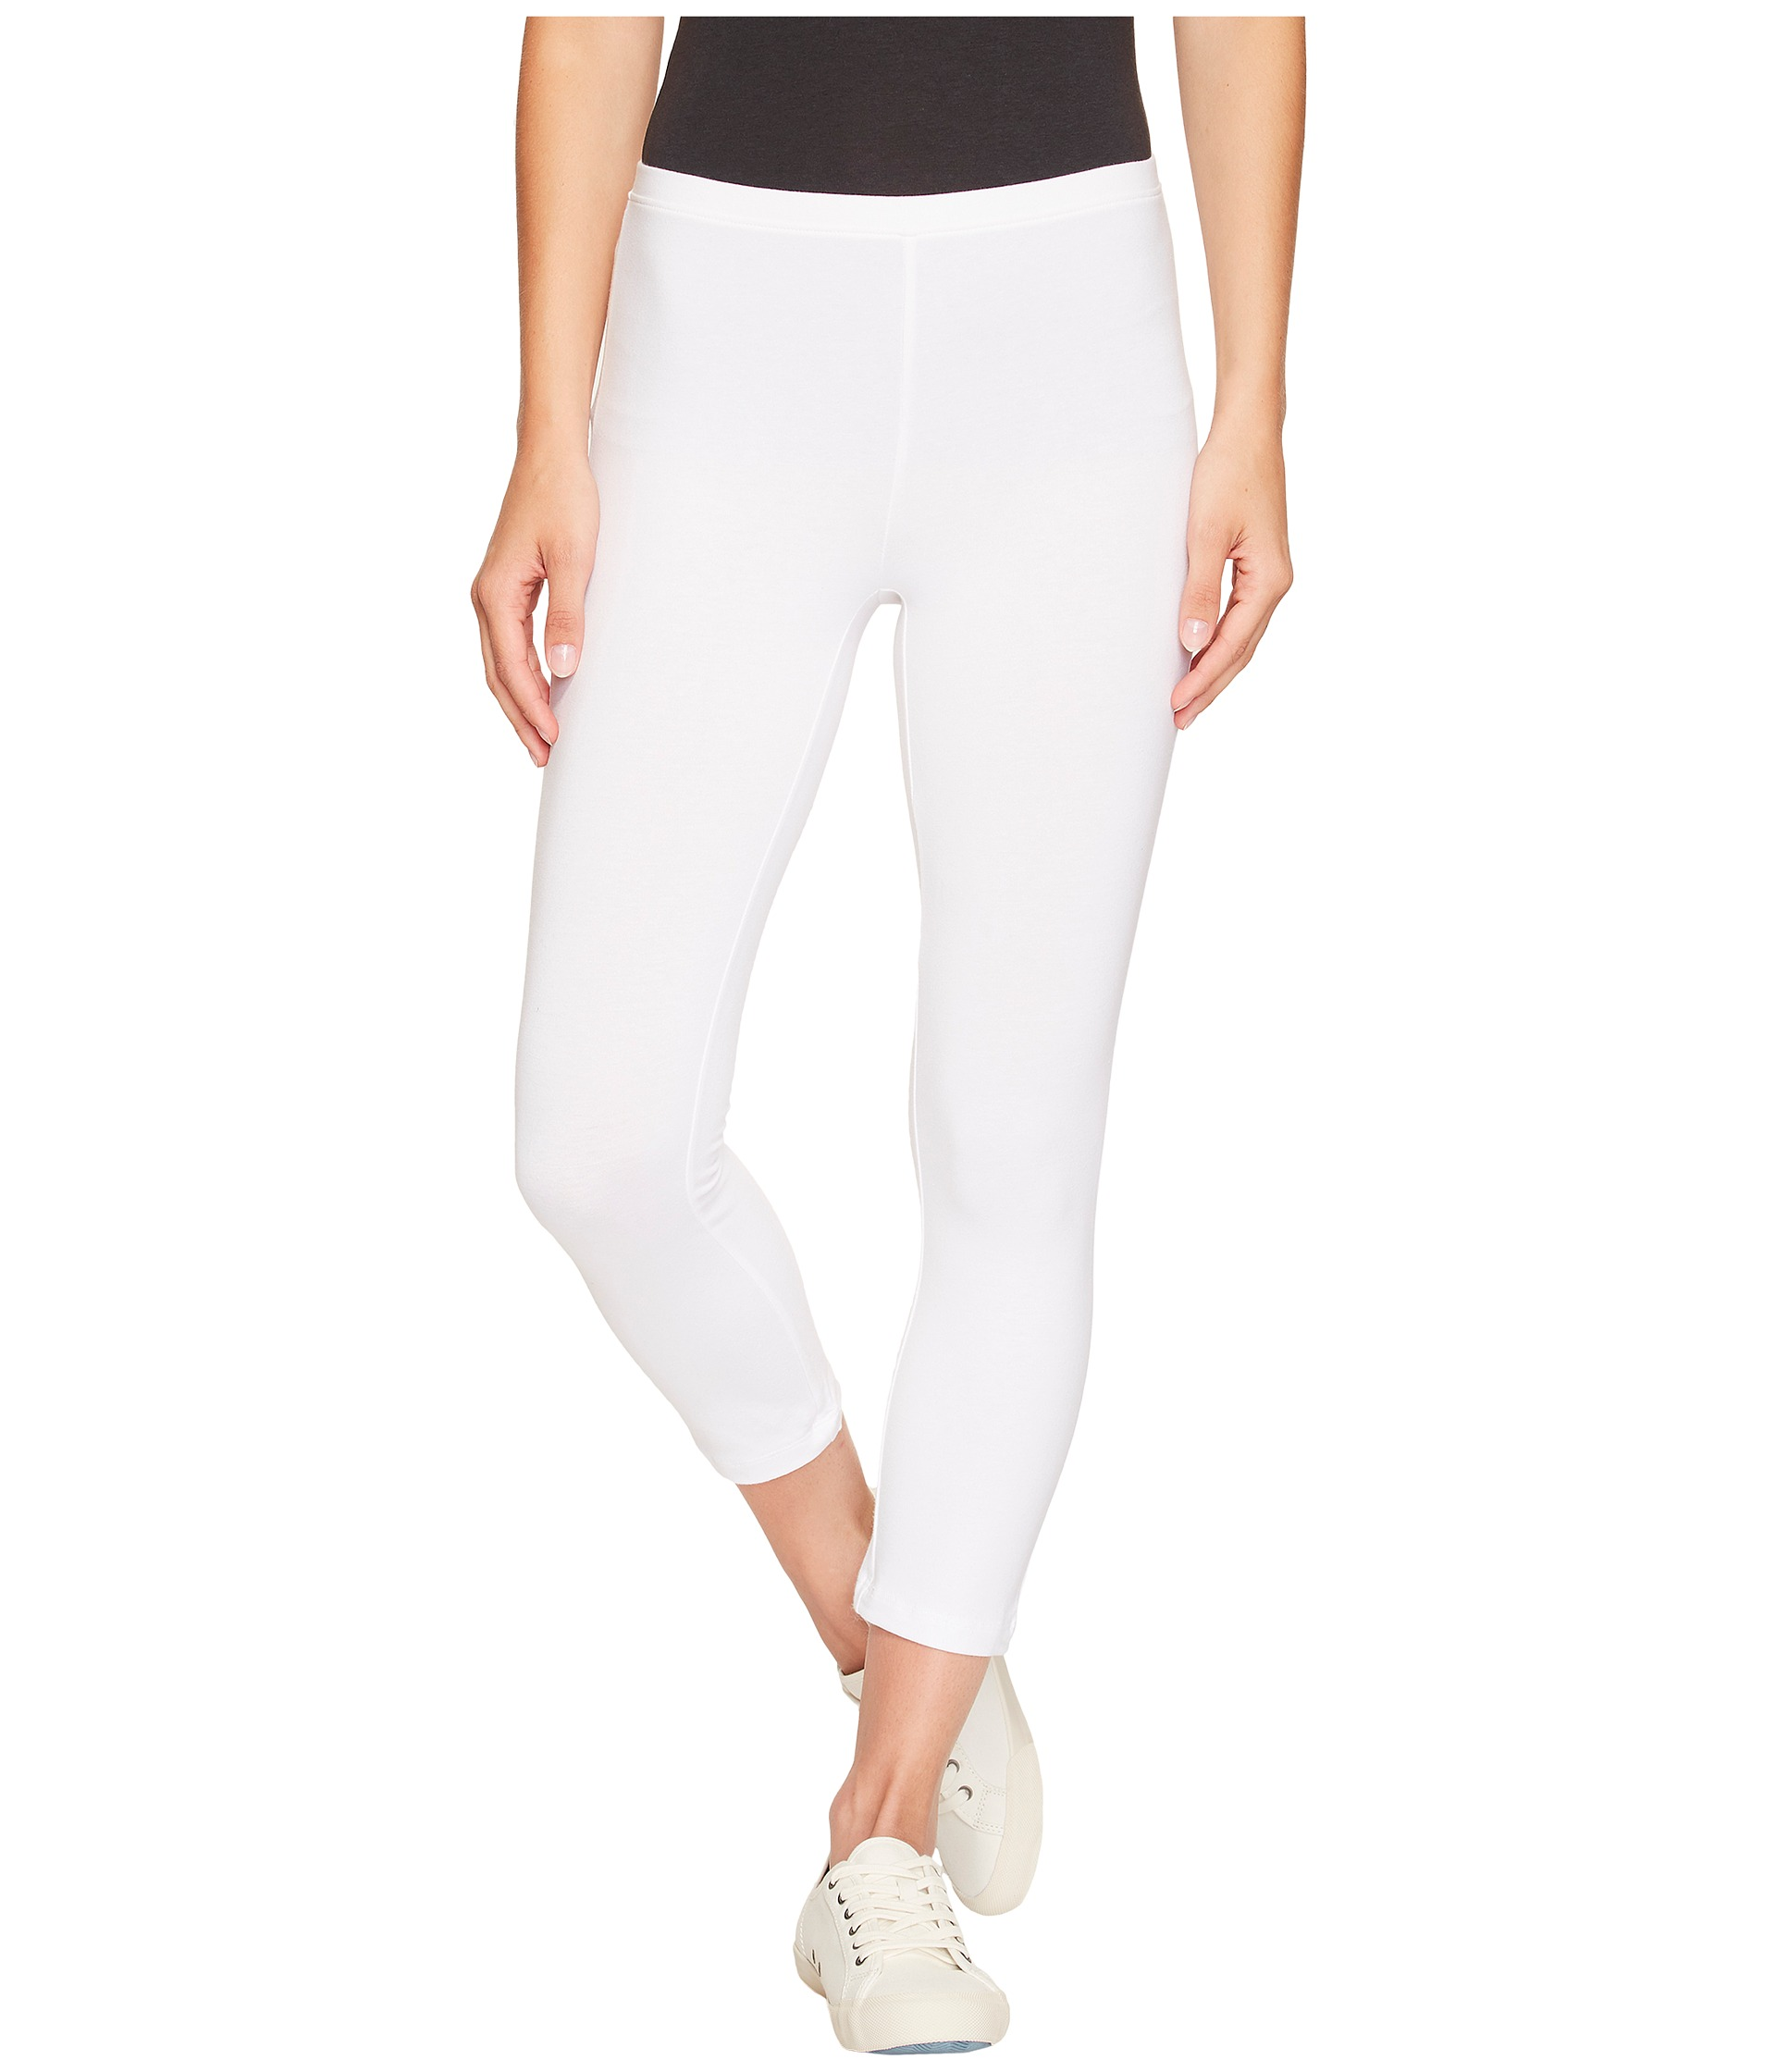 white cotton capri pants - Pi Pants